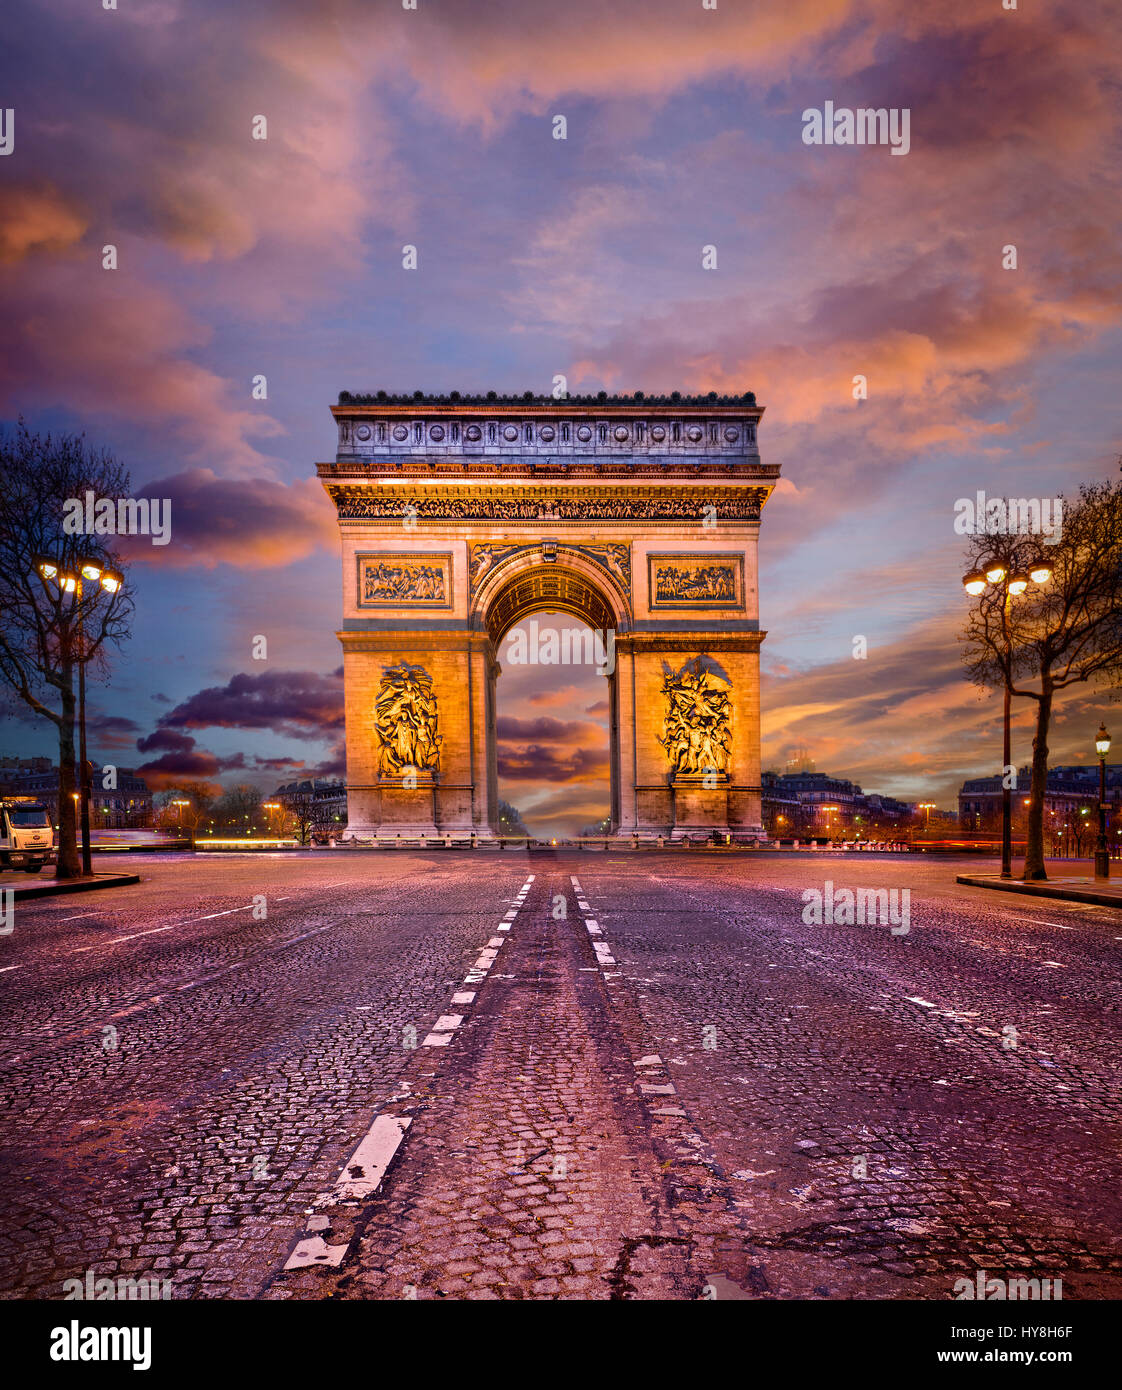 France, Paris, Arc de Triomphe - Stock Image